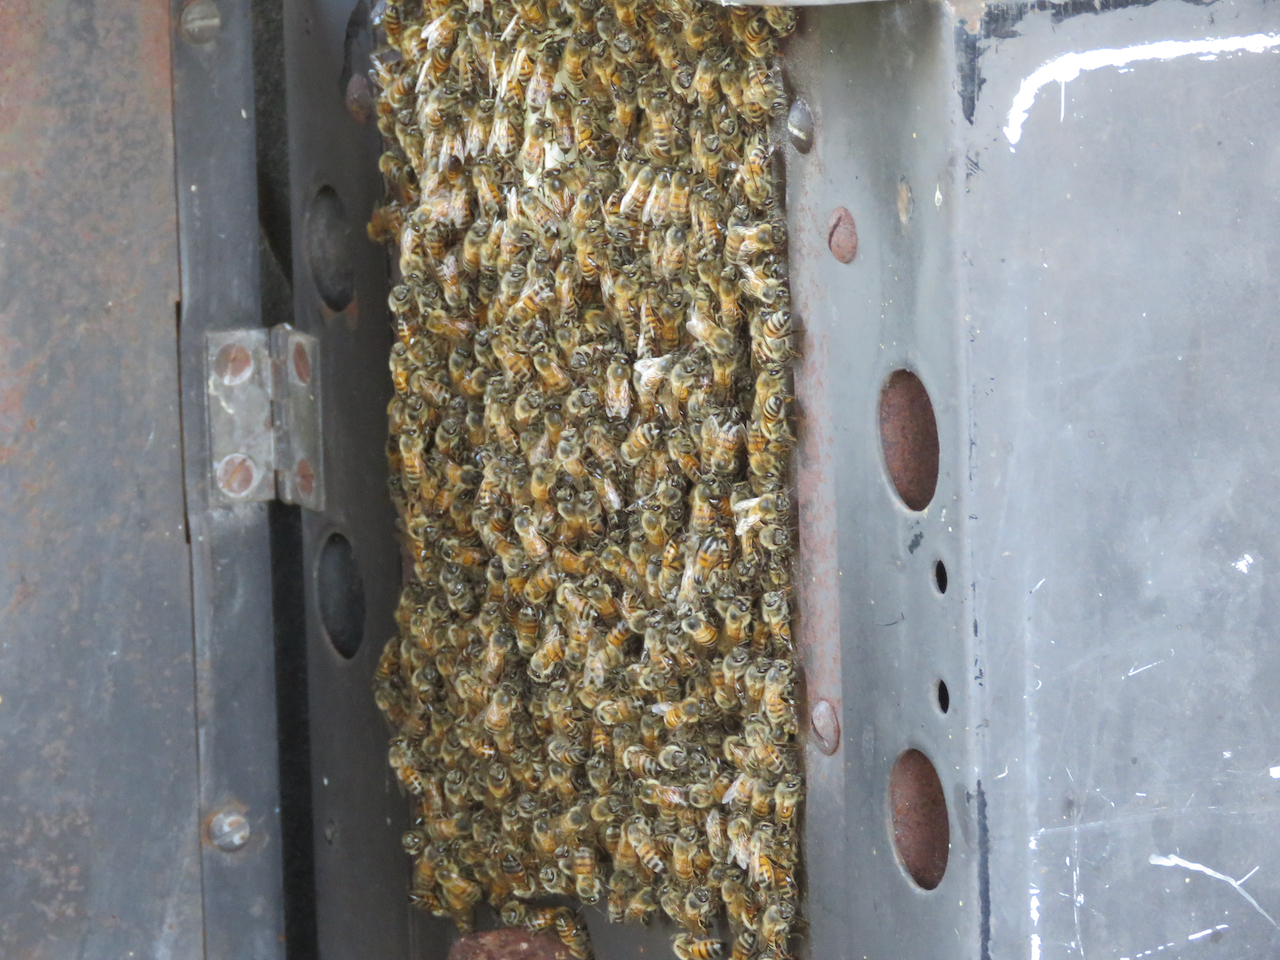 Beehive in an old wood stove